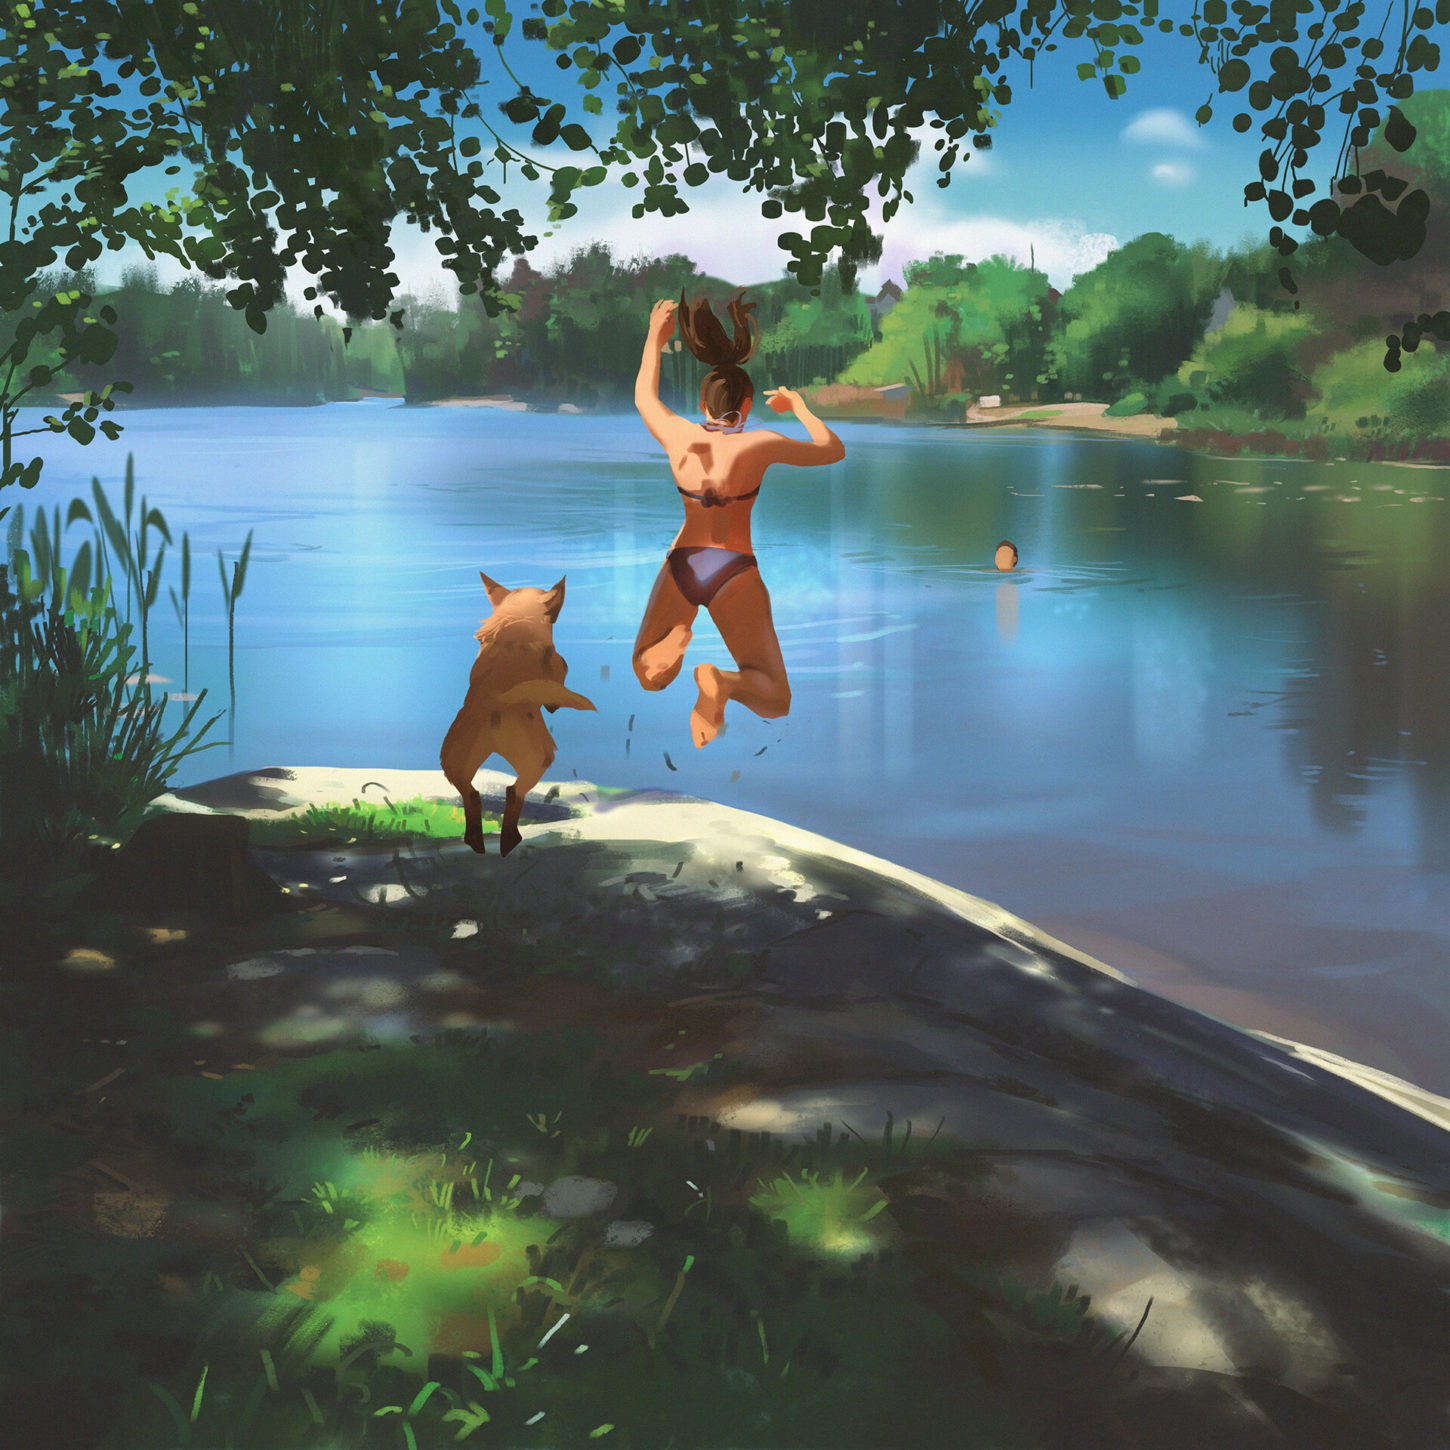 First swim of the summer final painting, Atey Ghailan_01